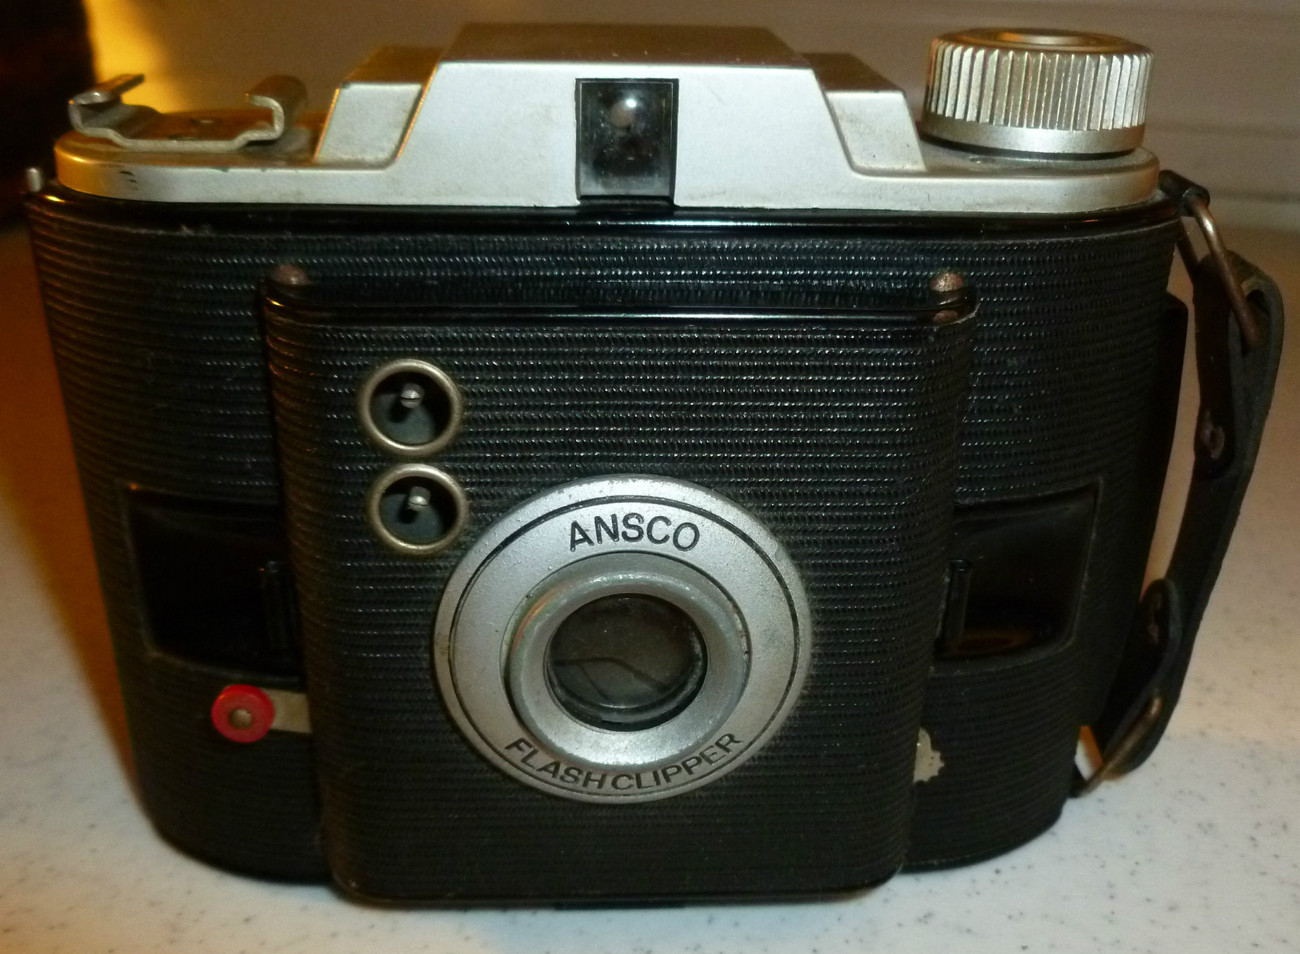 VINTAGE ANSCO FLASHCLIPPER 1940'S CAMERA